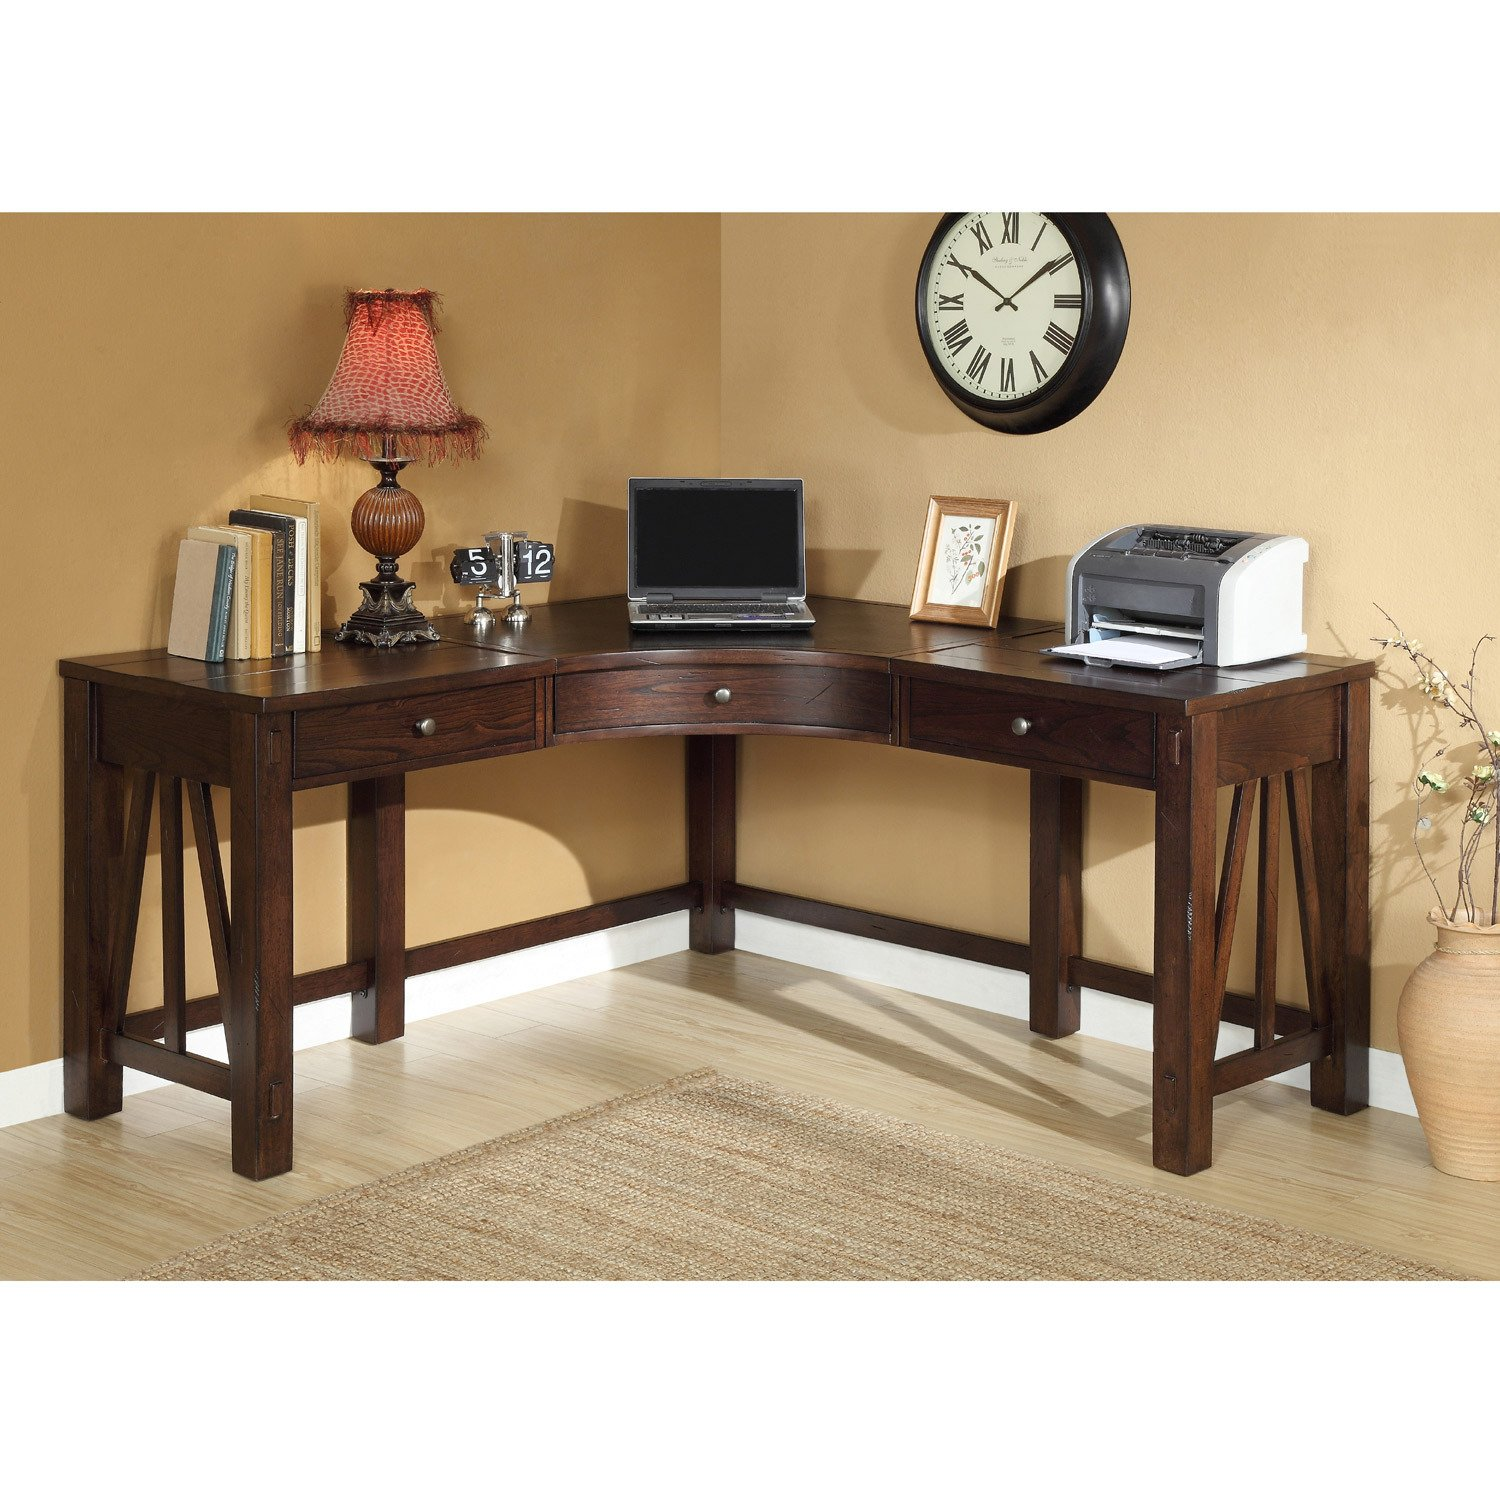 Amazon.com: Riverside Furniture Castlewood Corner Desk In Warm Tobacco:  Kitchen U0026 Dining